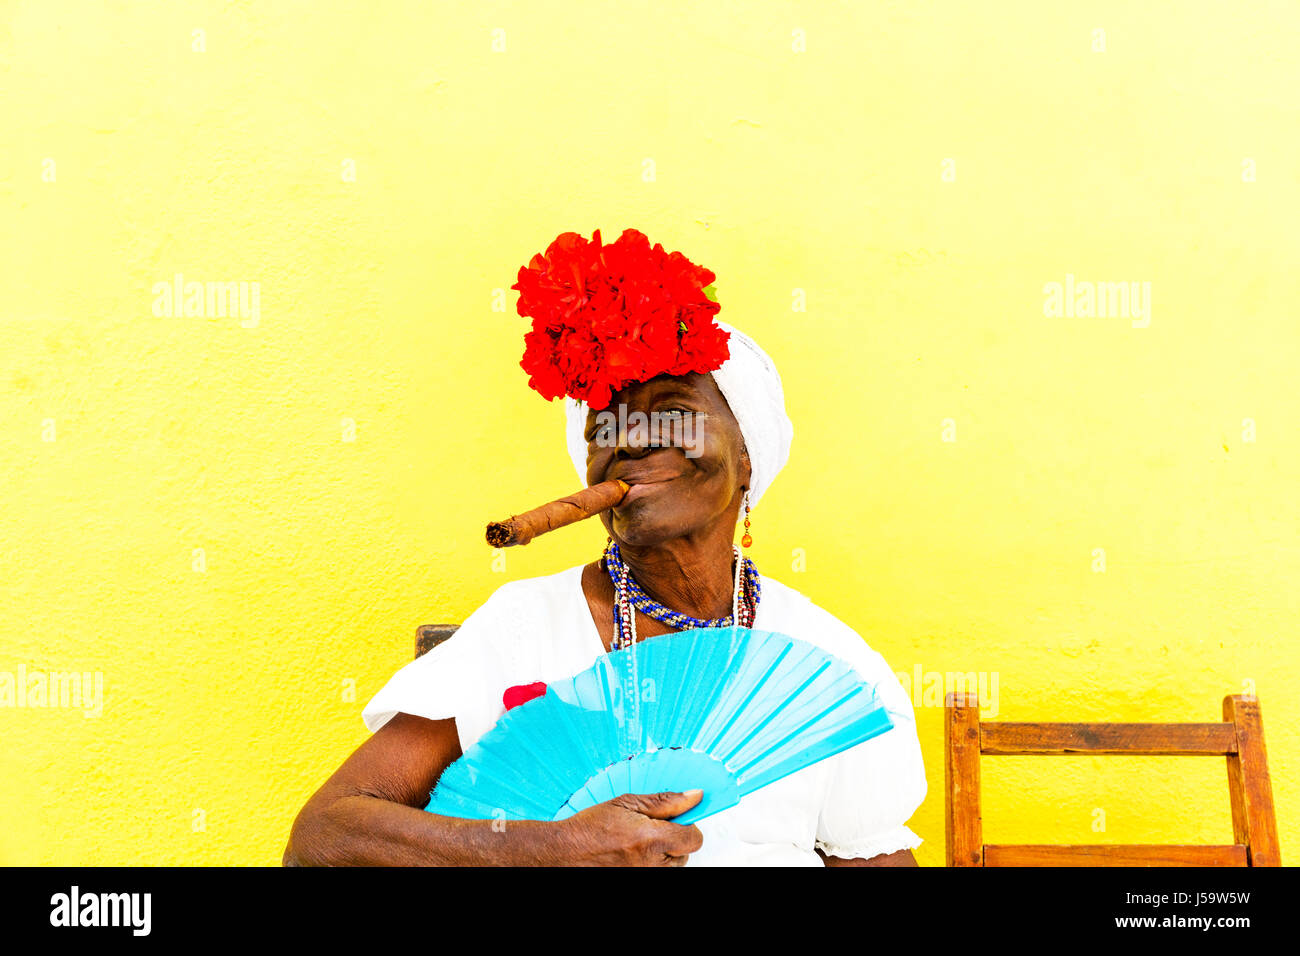 Cuban woman with cigar in mouth posing for tourists earning money for photos Cuba Havana woman cigar posing with - Stock Image